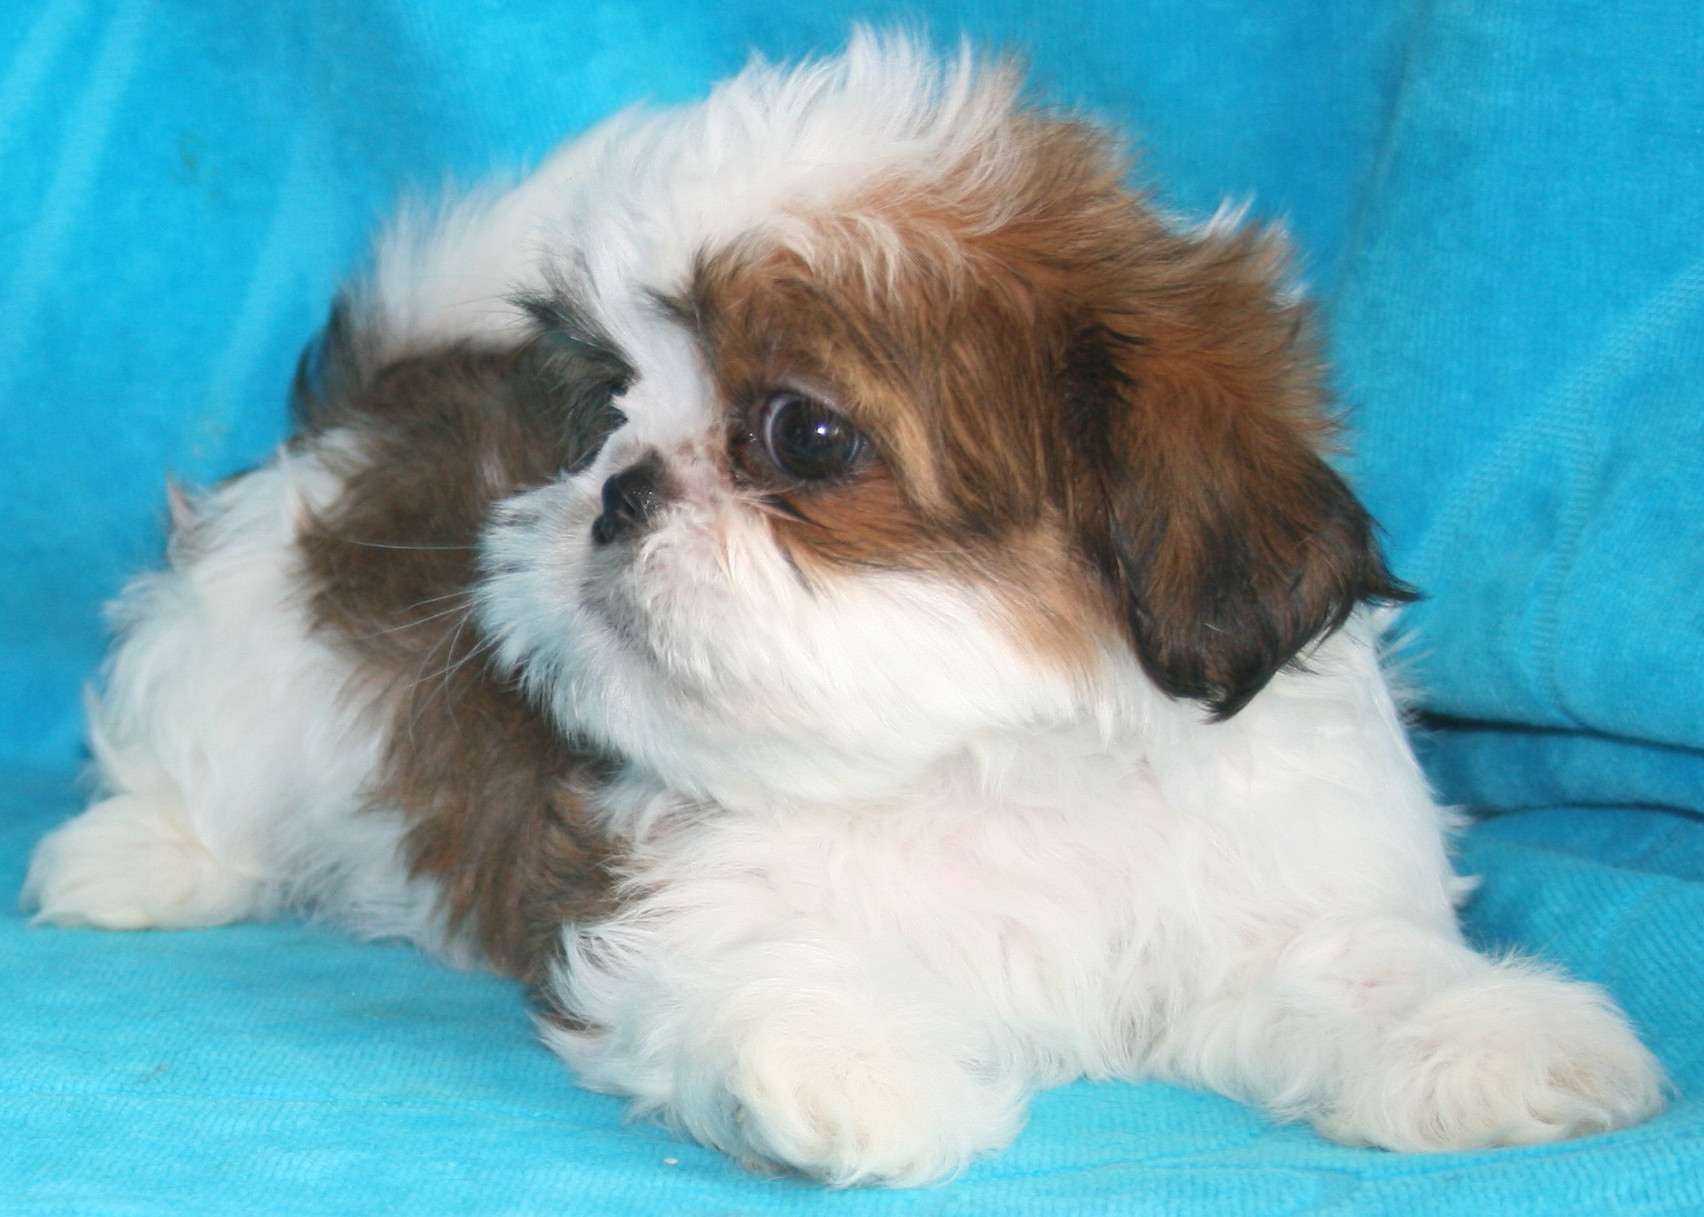 ShihPoo puppies for sale! These lovable ShihPoo puppies are a designer dog breed recognized by the ACHC They are a cross between a Shih Tzu and a Poodle